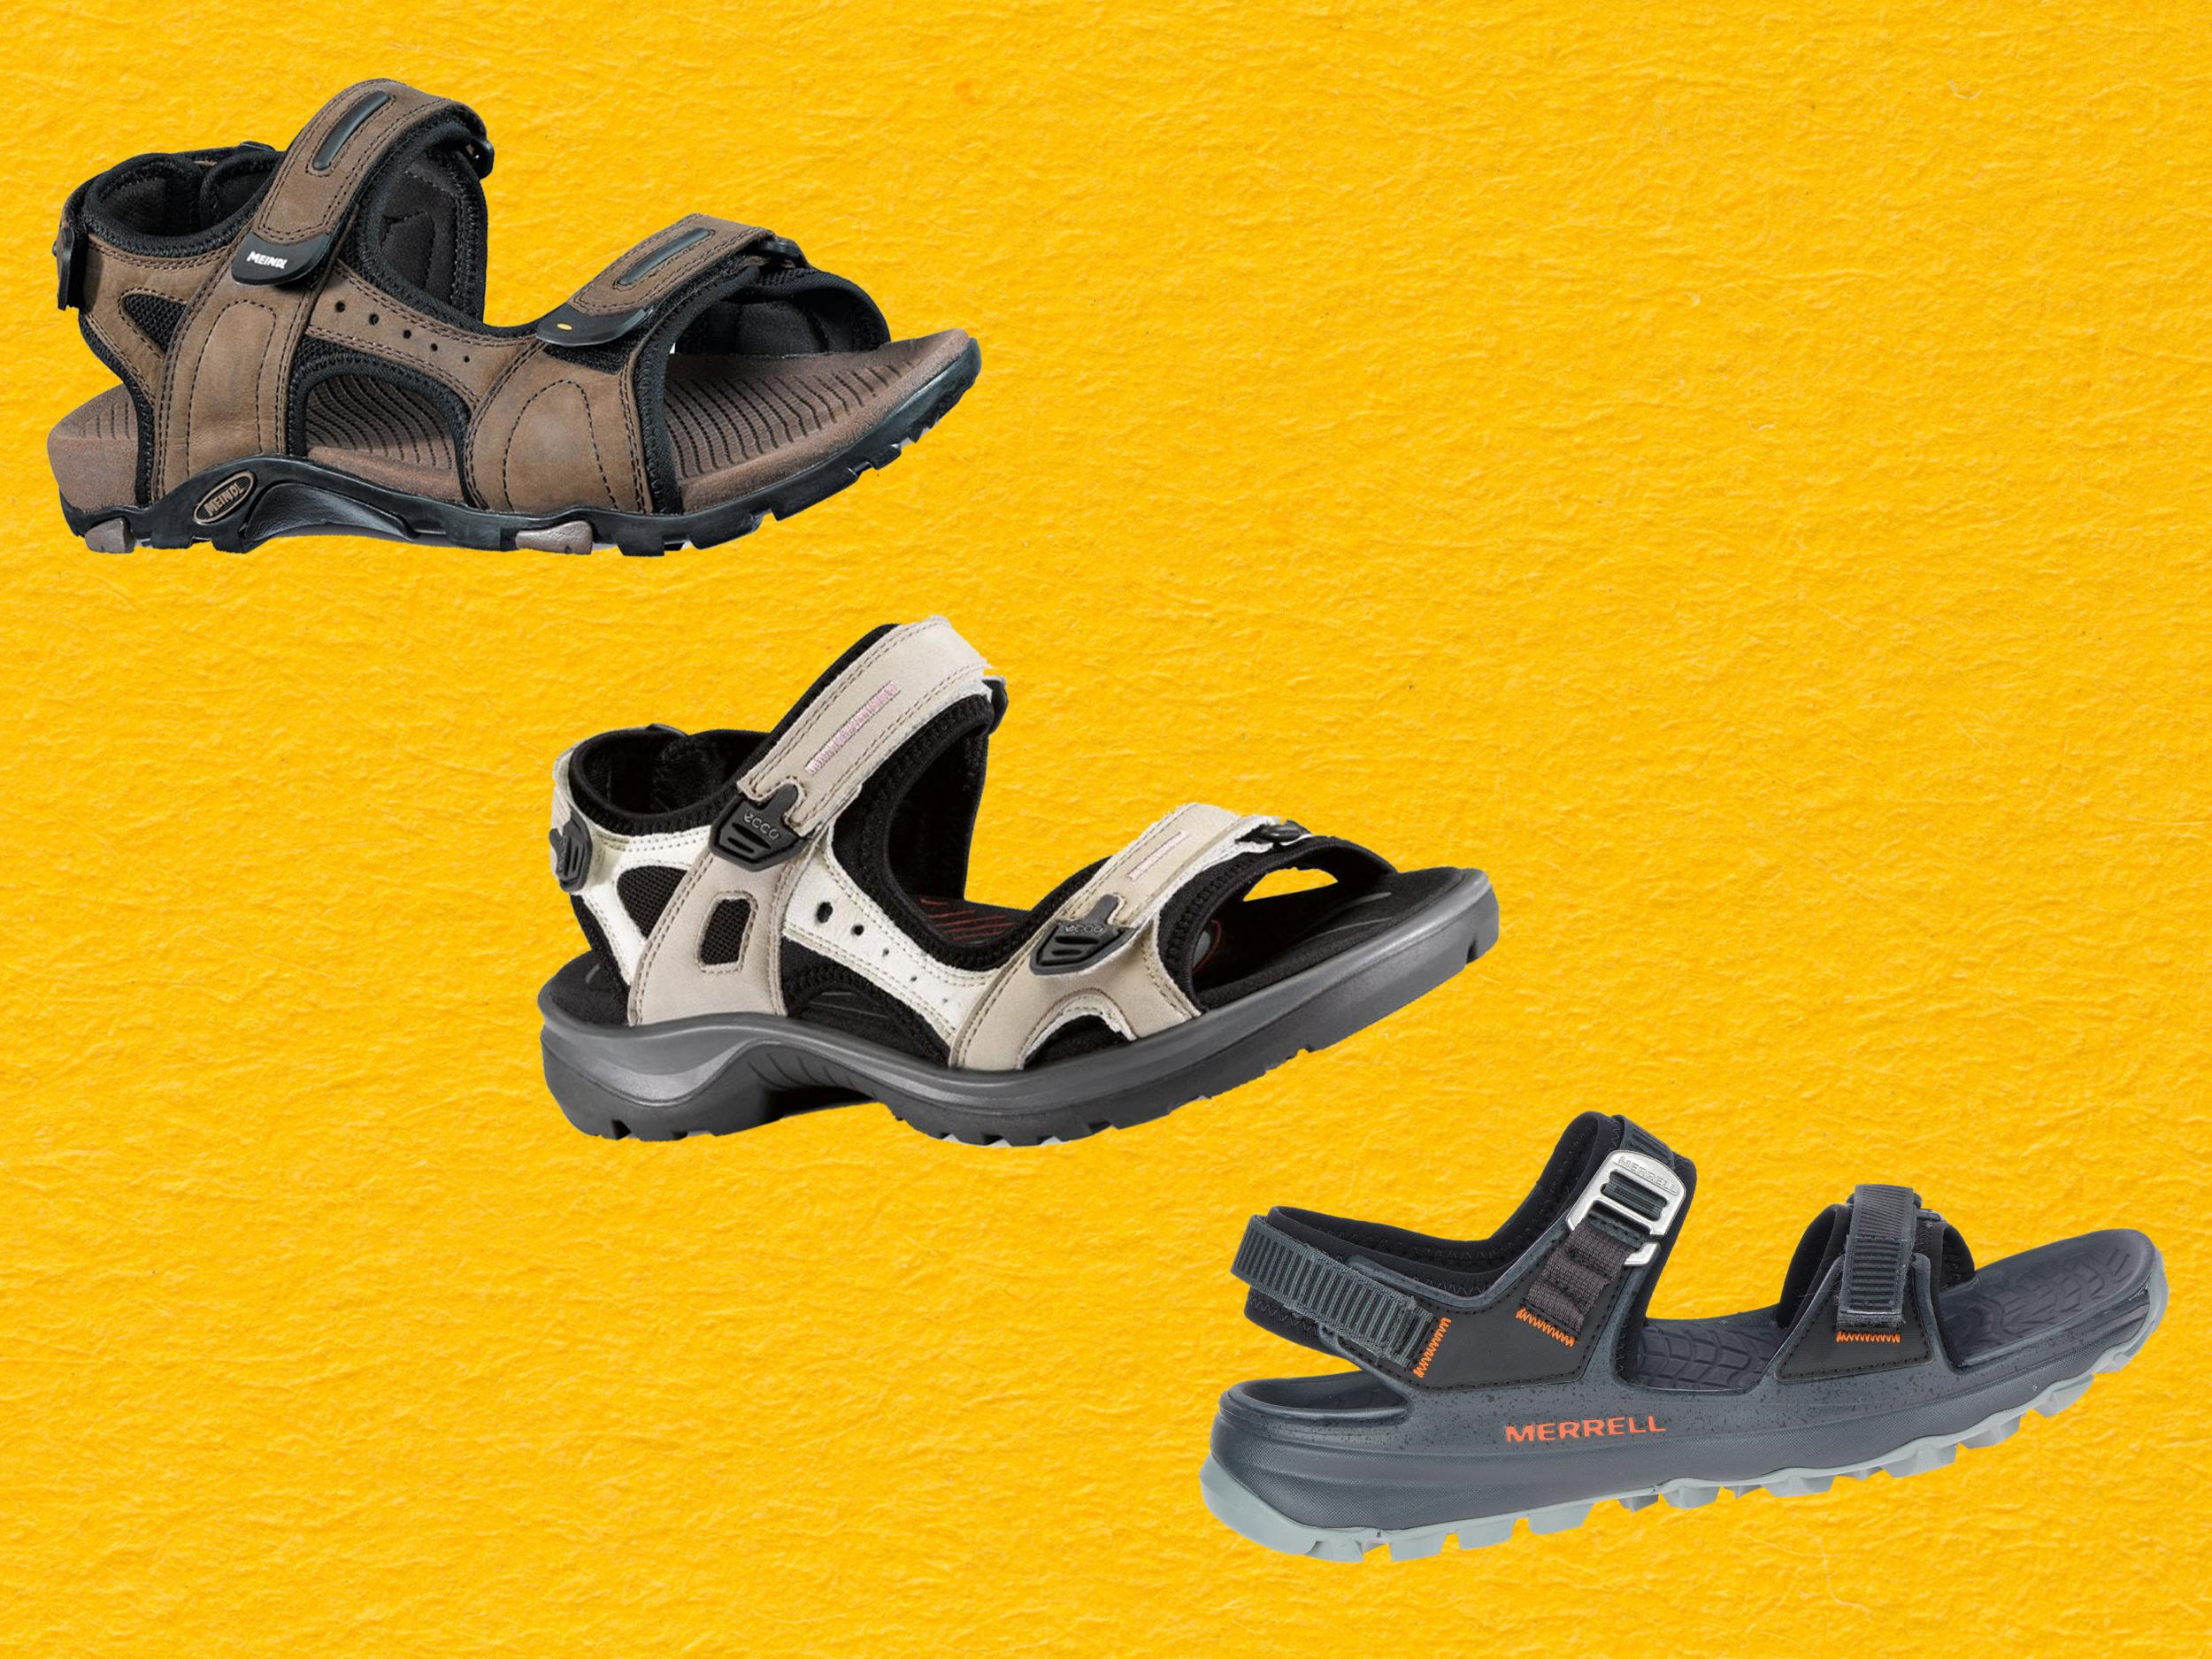 92dbe84996a9a Best men's walking sandals that are breathable, comfortable and supportive